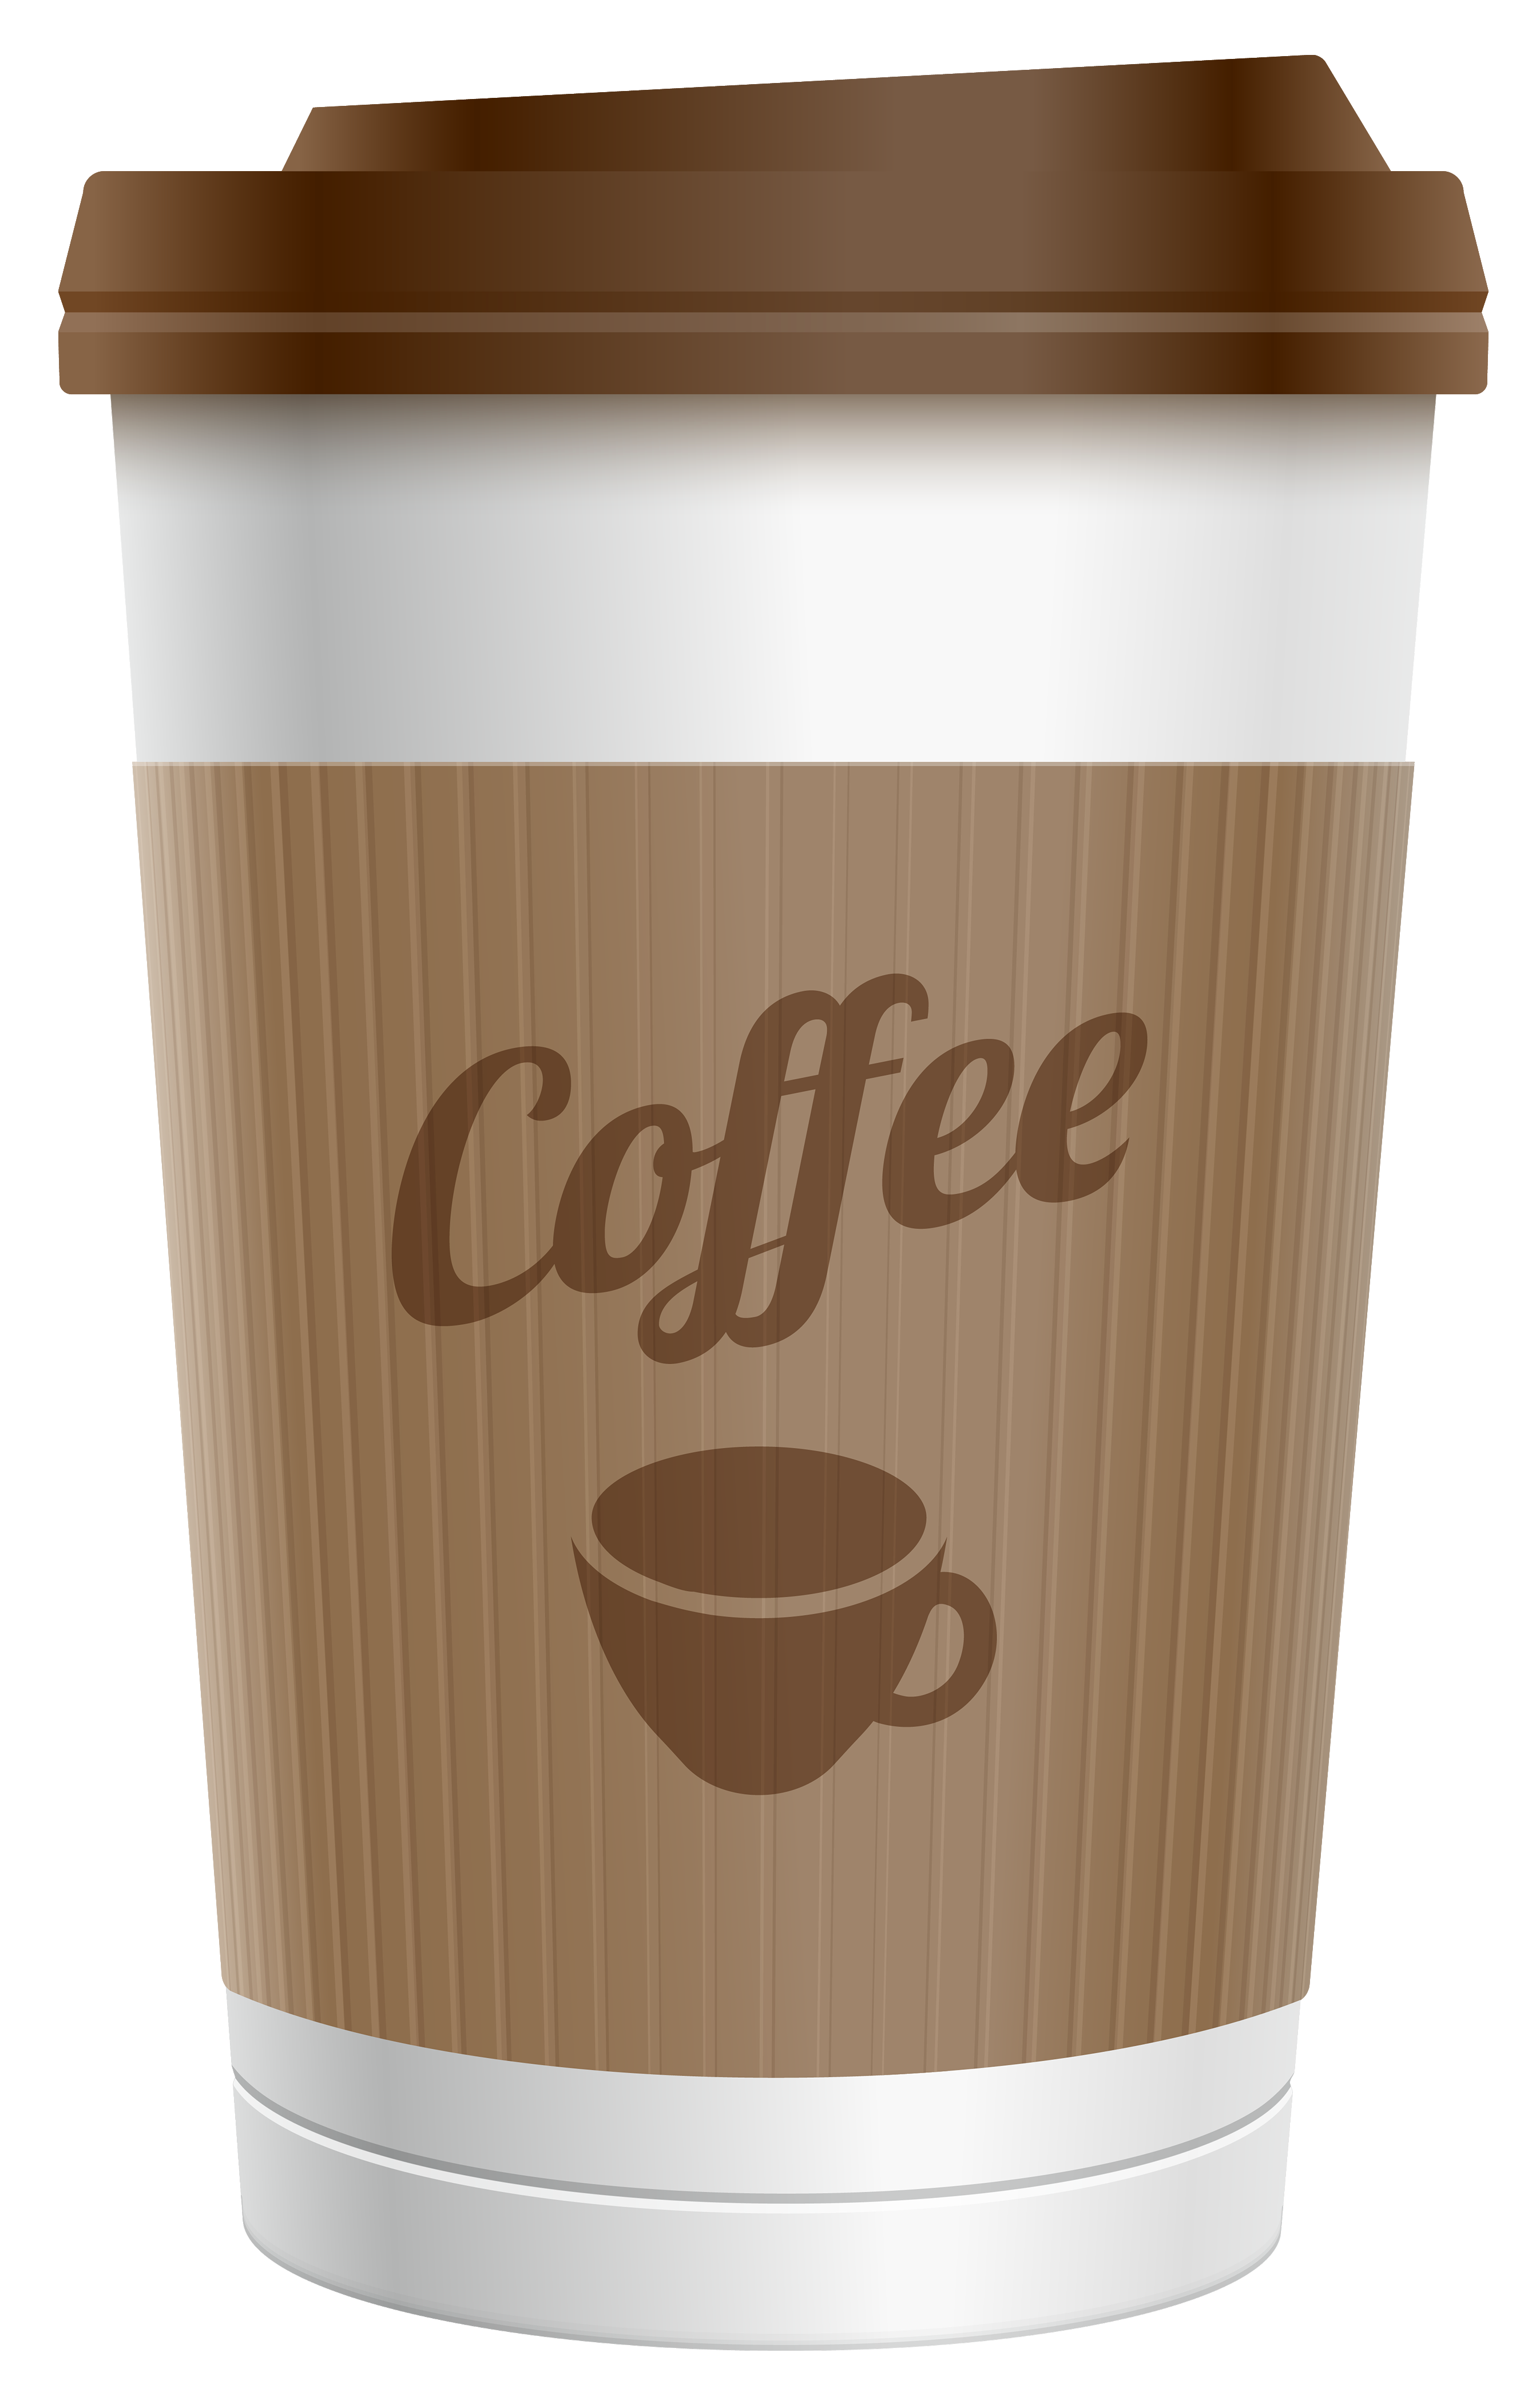 Coffe Cups Png - Coffee cup plasticffee cup clipart image (com imagens ...